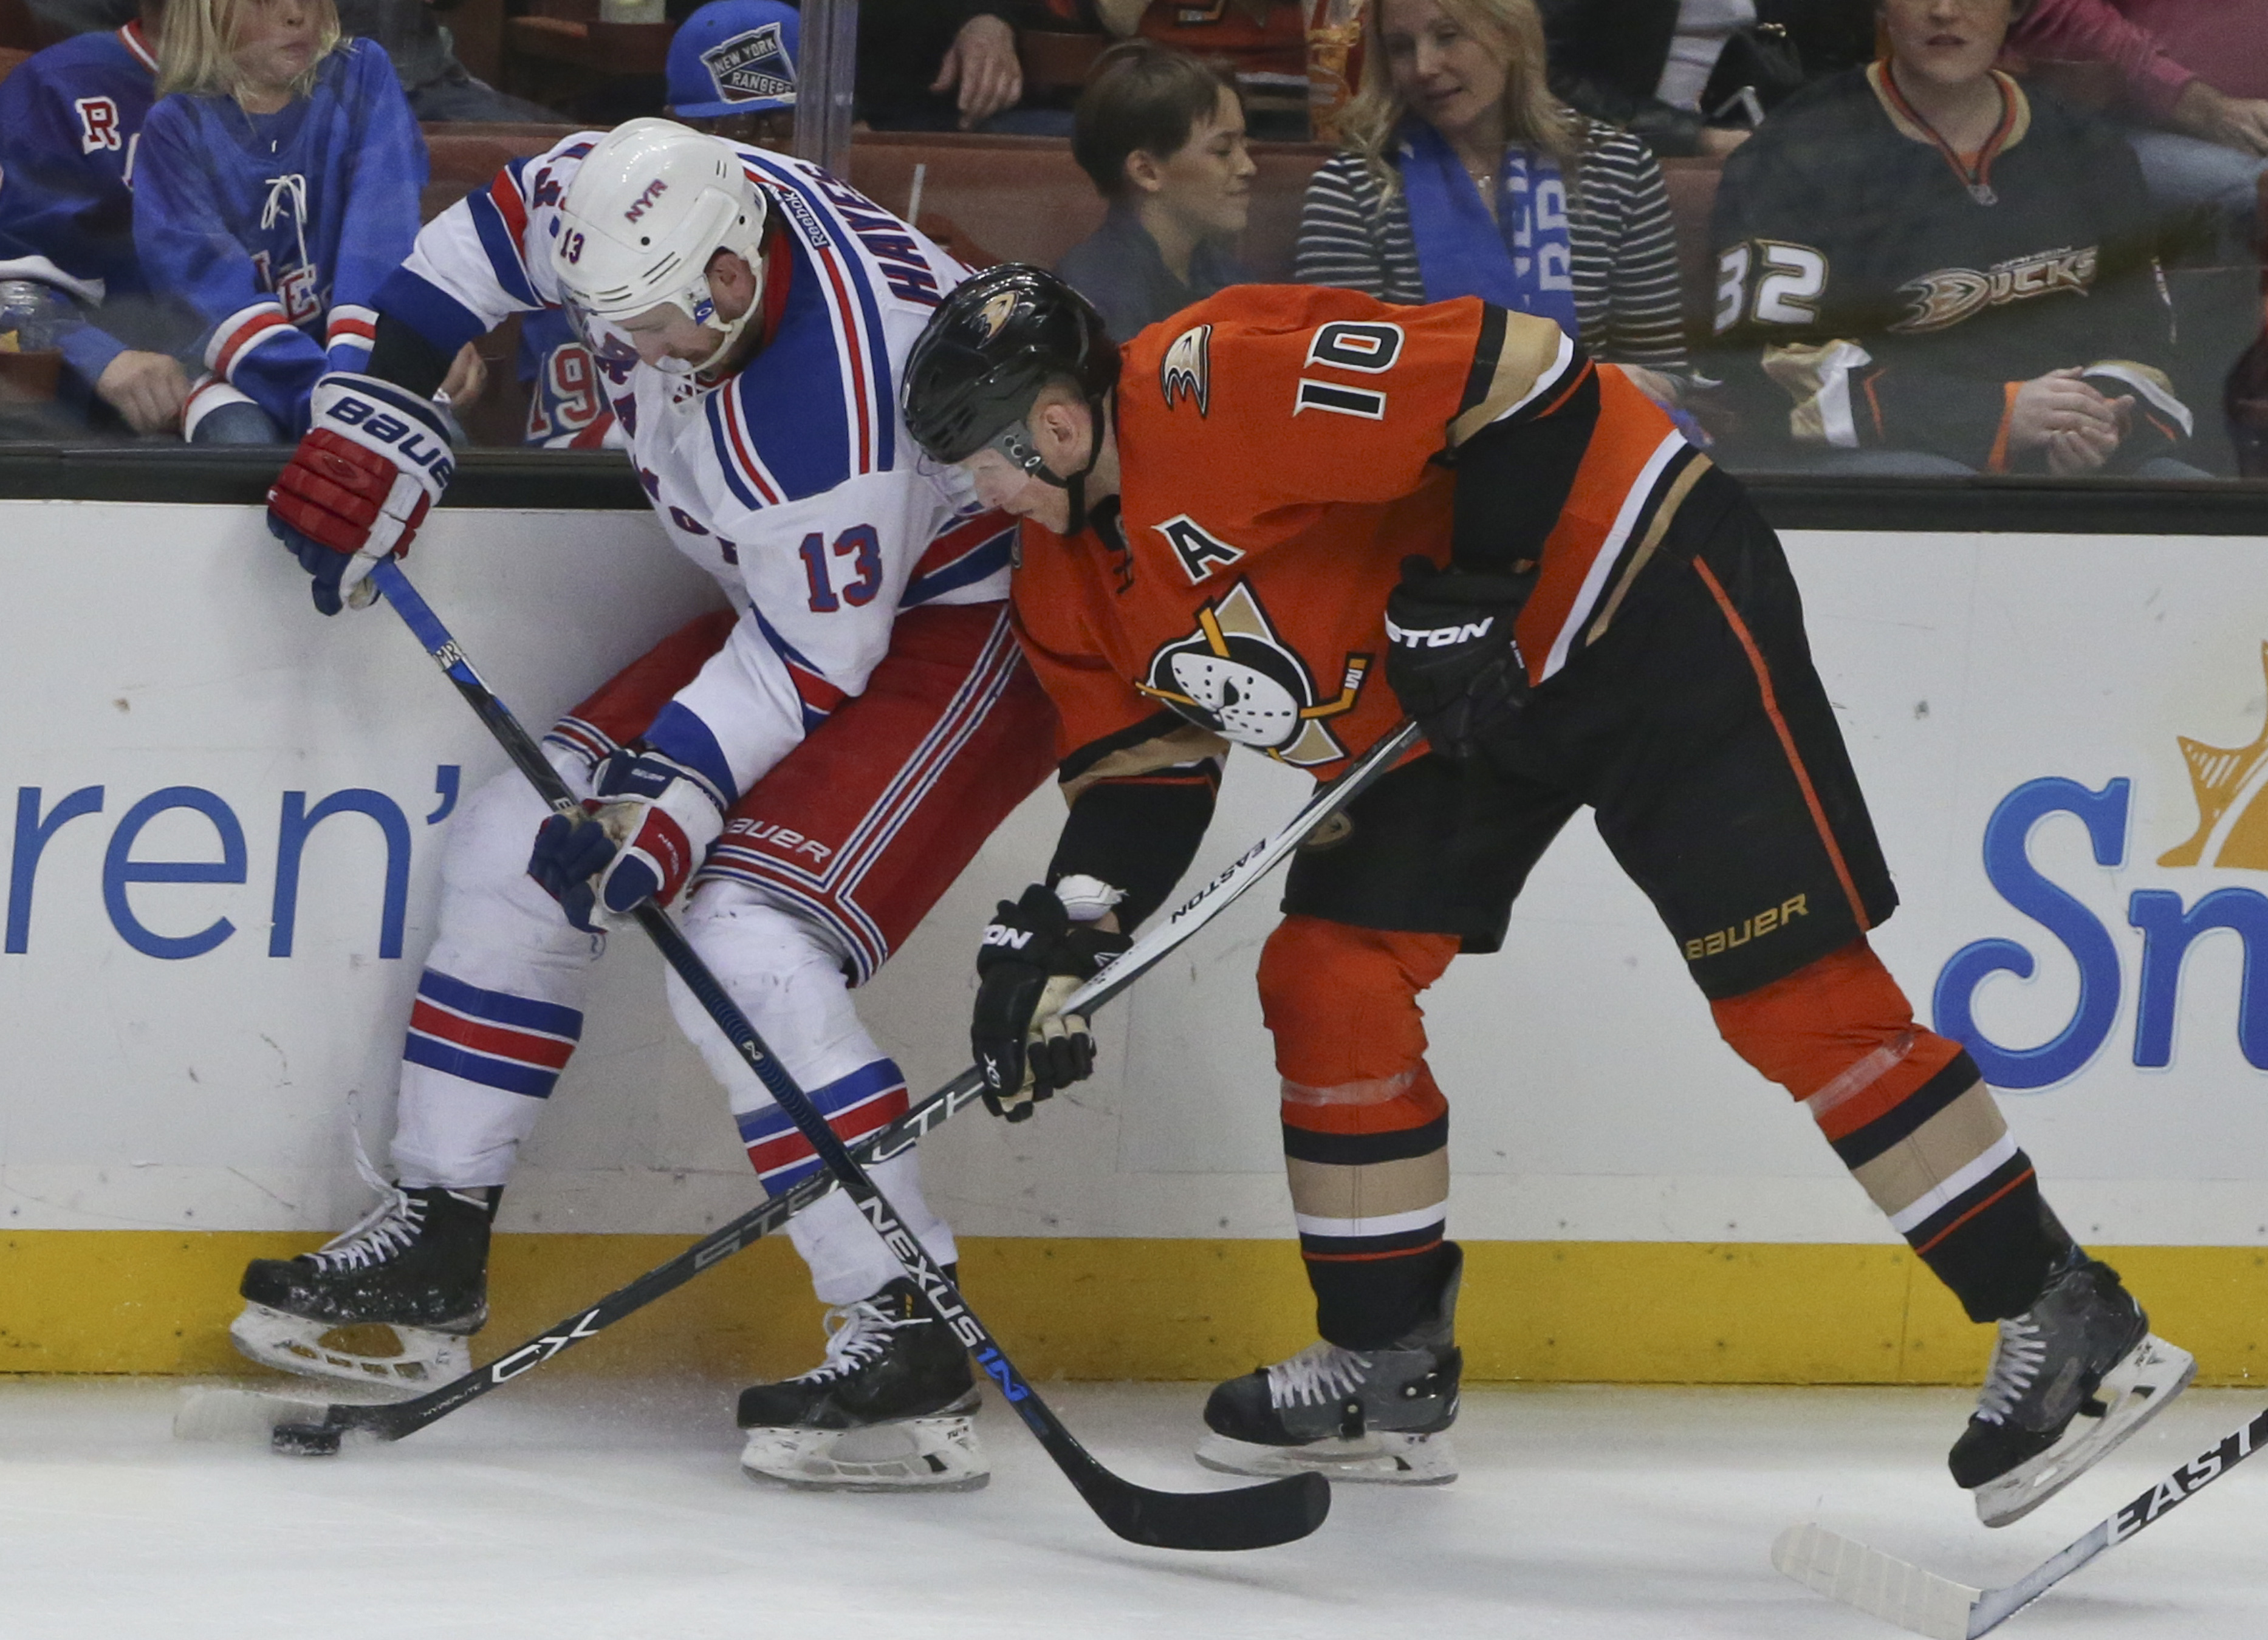 Anaheim Ducks right wing Corey Perry gets inside on New York Rangers right wing Kevin Hayes to free the puck during the second period of an NHL hockey game Wednesday March 16, 2016, in Anaheim, Calif. (AP Photo/Lenny Ignelzi)